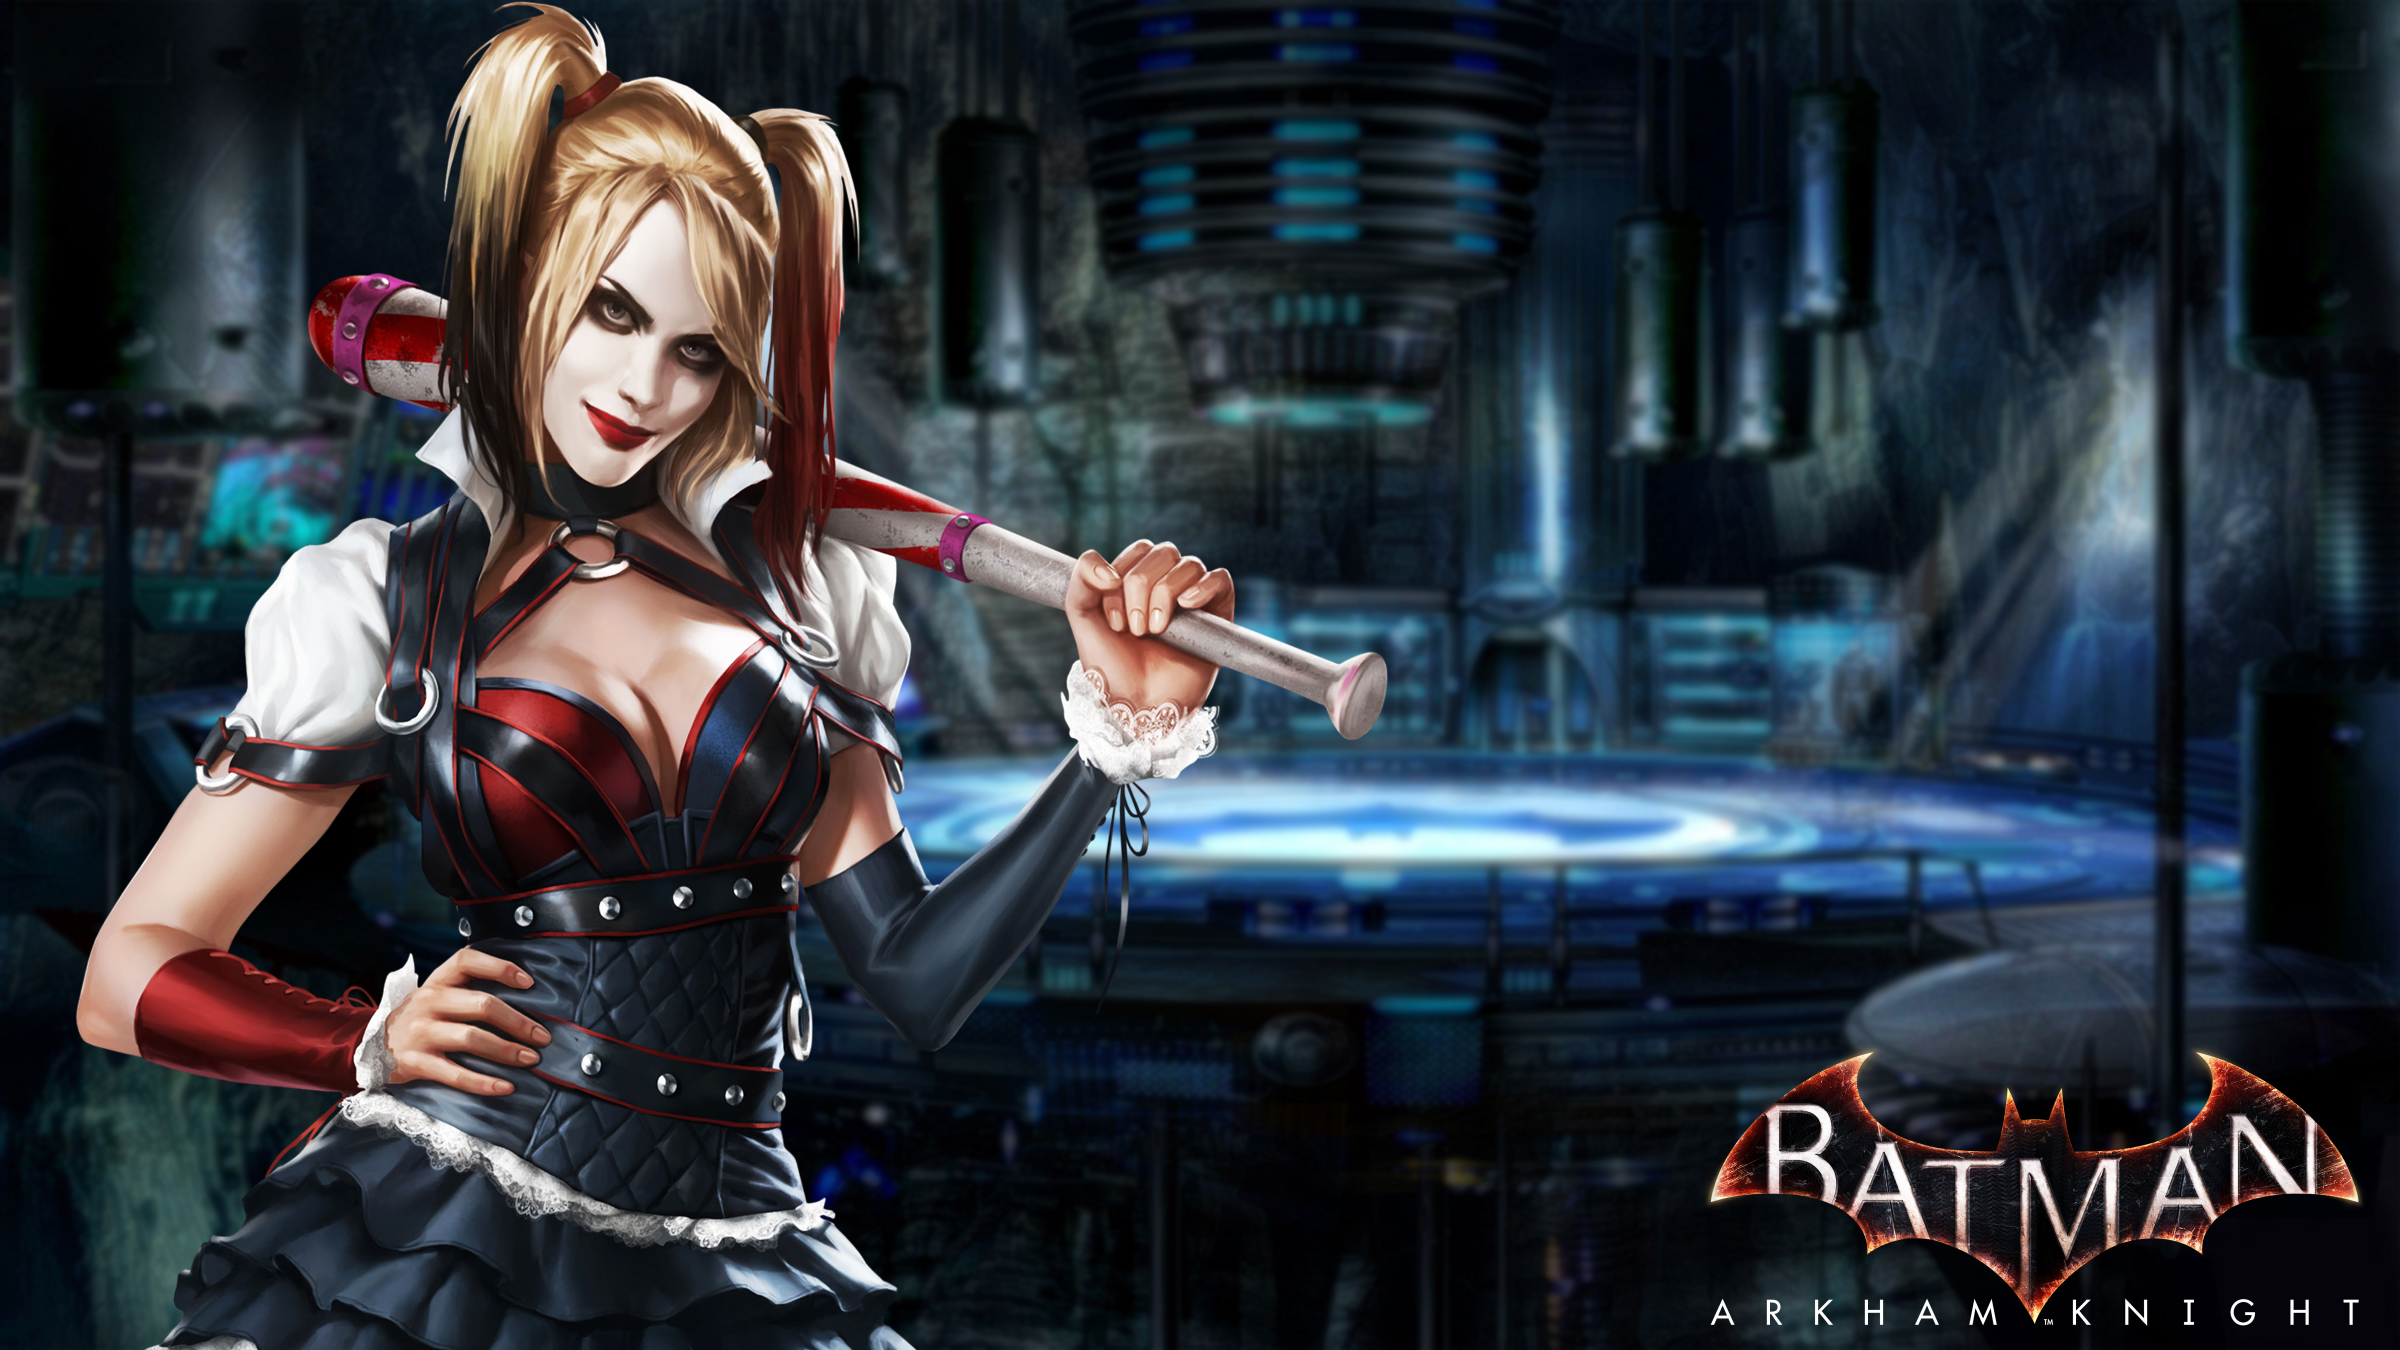 batman arkham series images harley quinn hd wallpaper and background